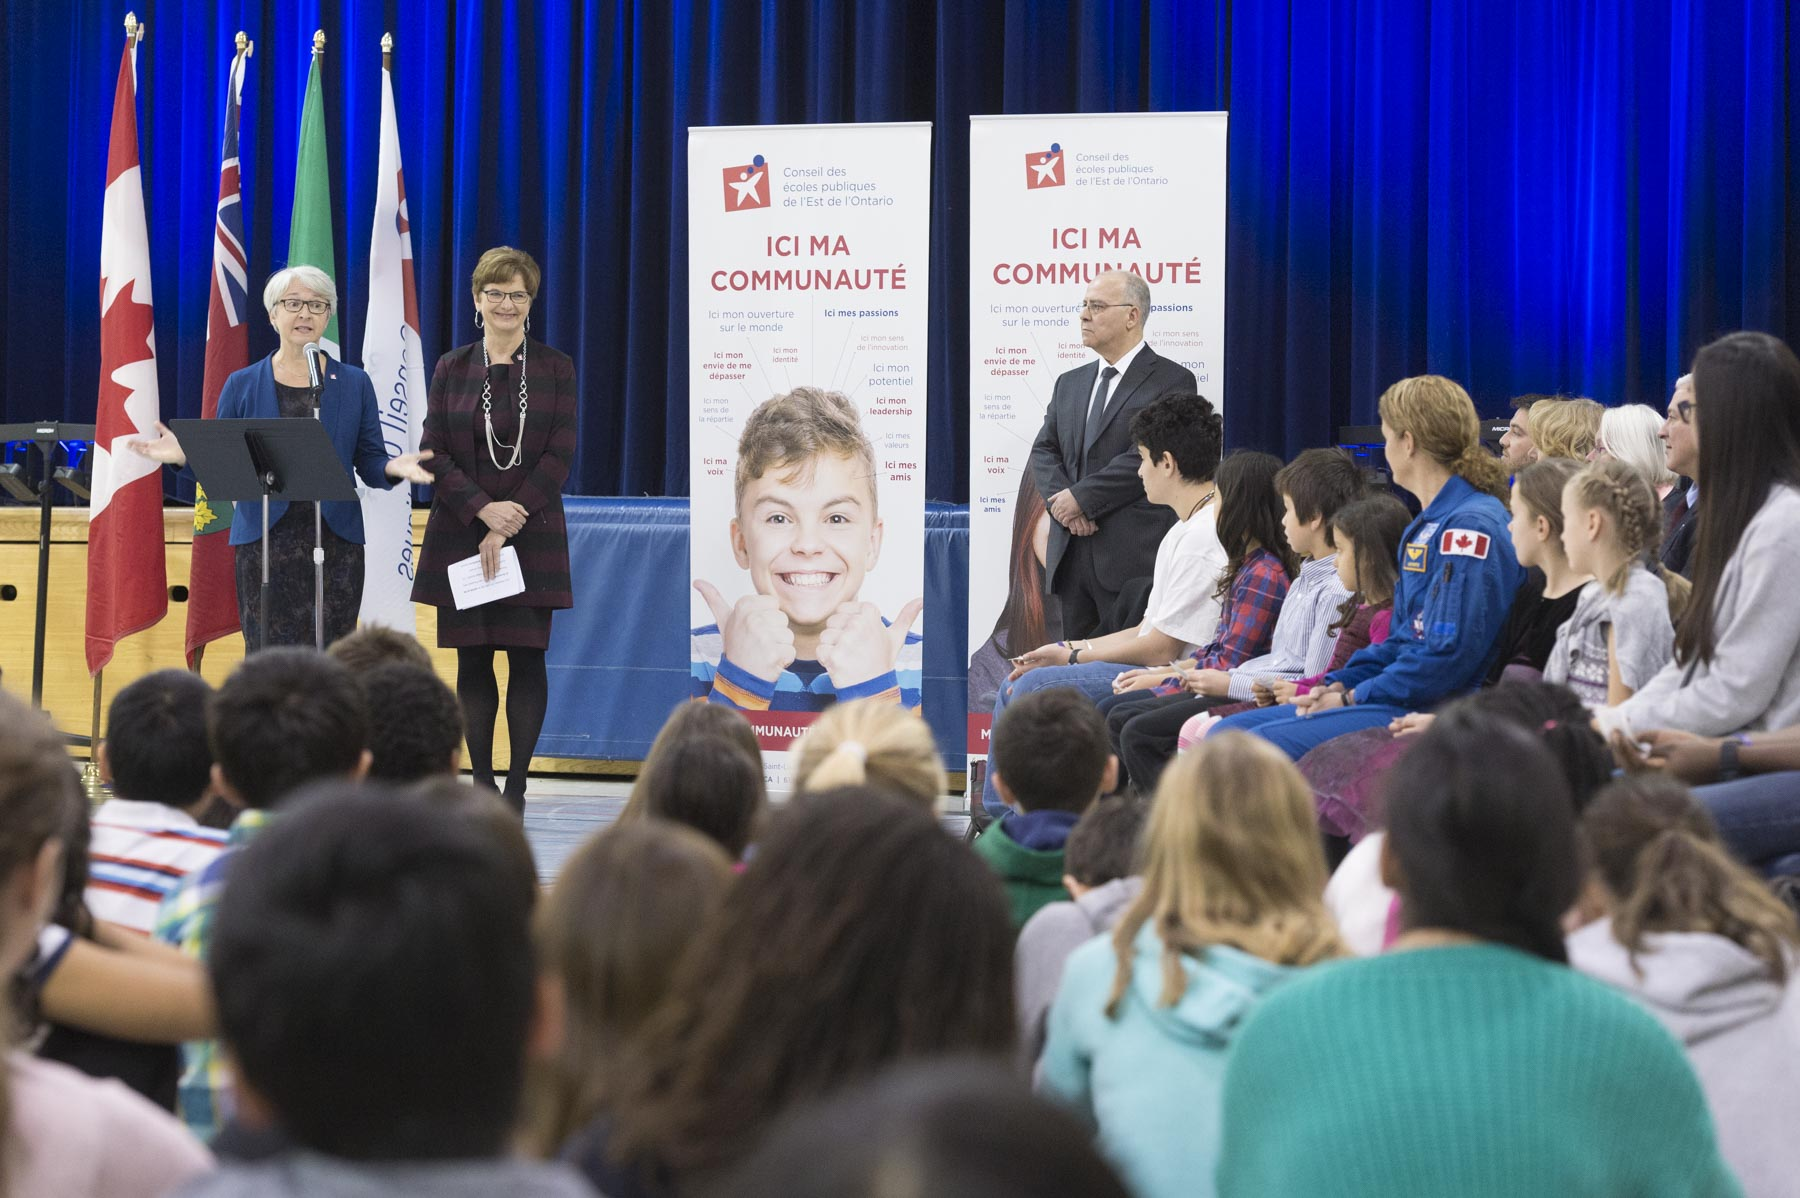 The Governor General was then warmly welcomed by hundreds of students and representatives from the school and school board during an official ceremony in the school gym.